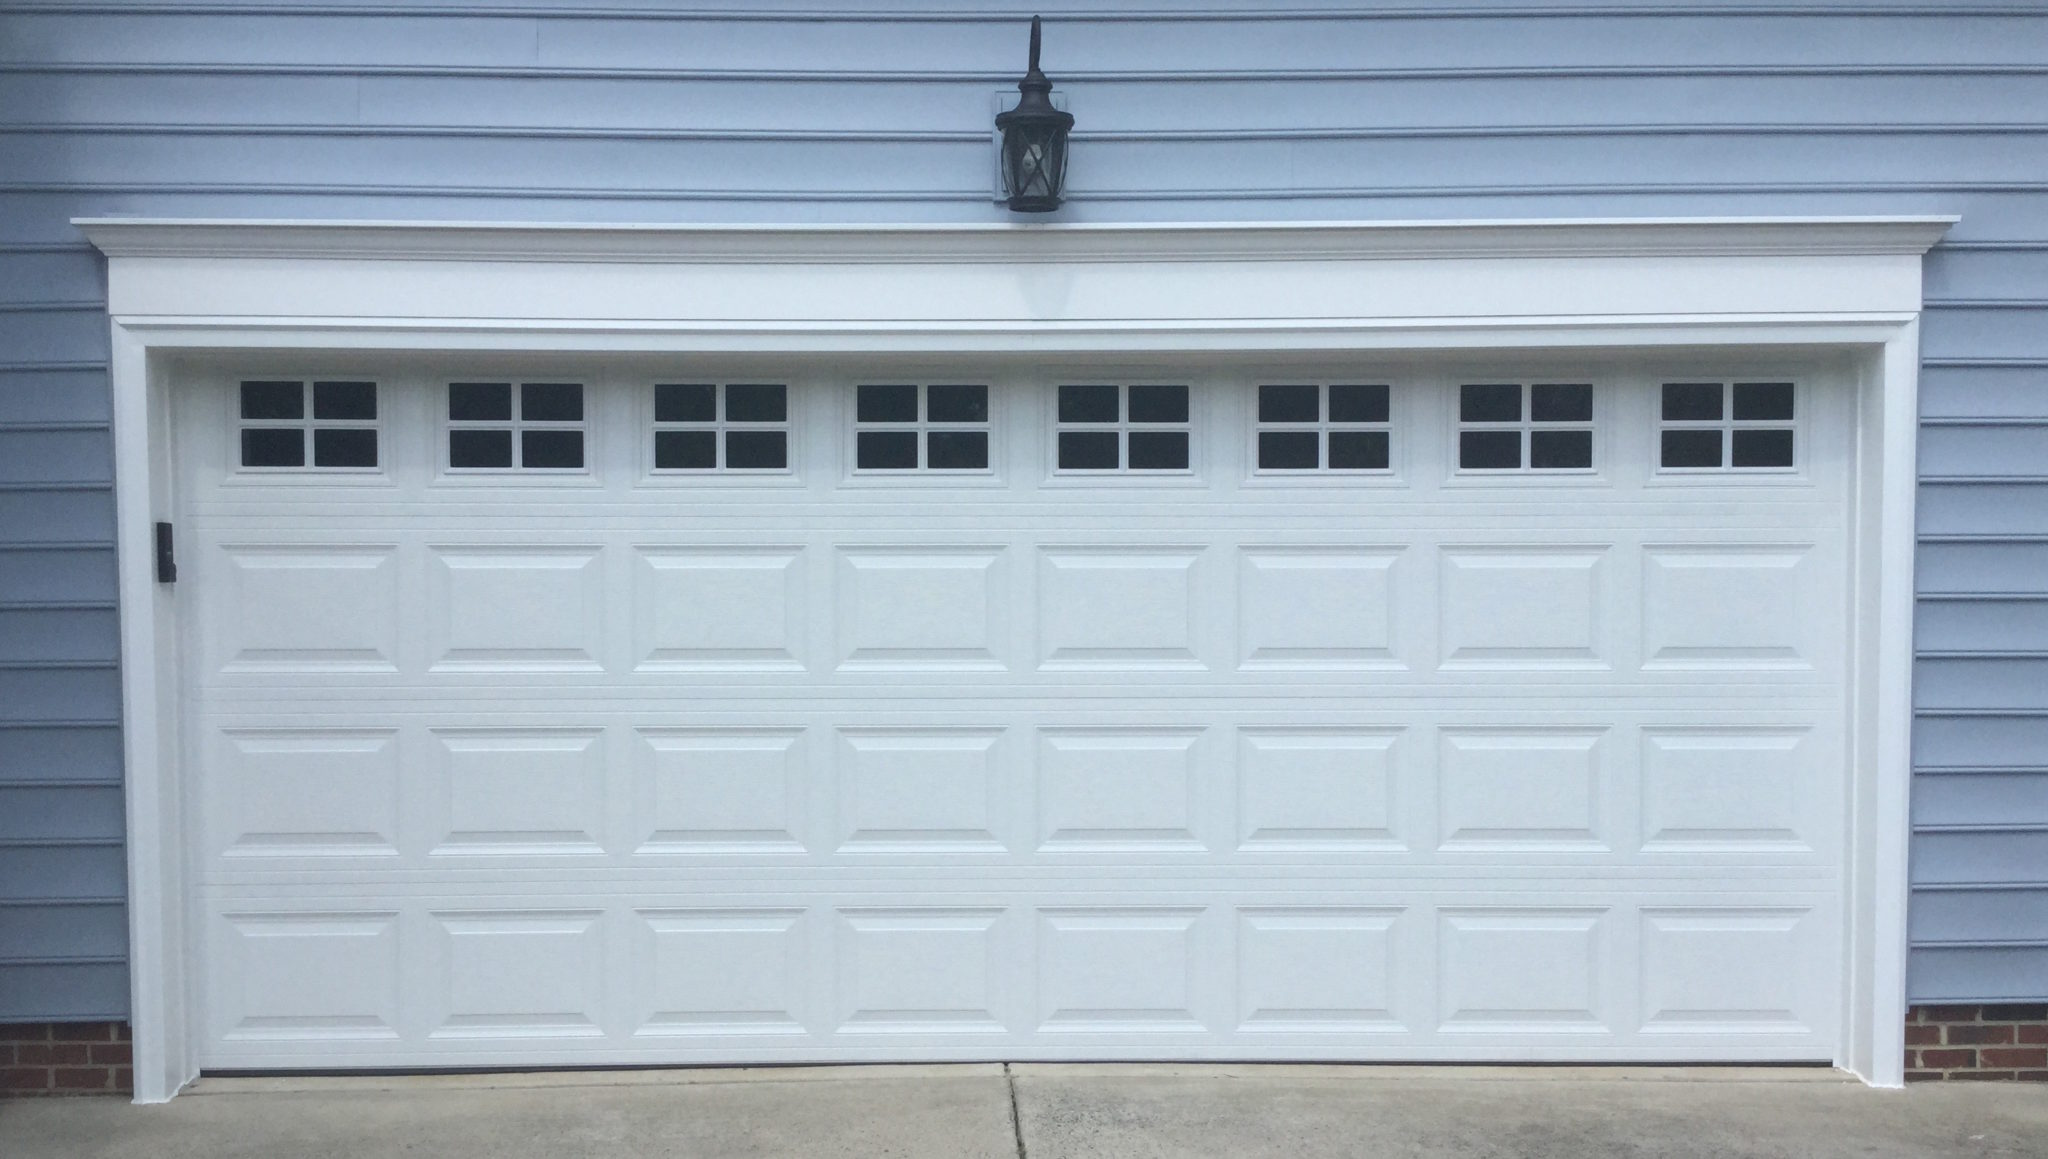 1702 #4C6680 3610 Residential Garage Door Installation A Plus Garage Doors pic Installed Garage Doors 37213008